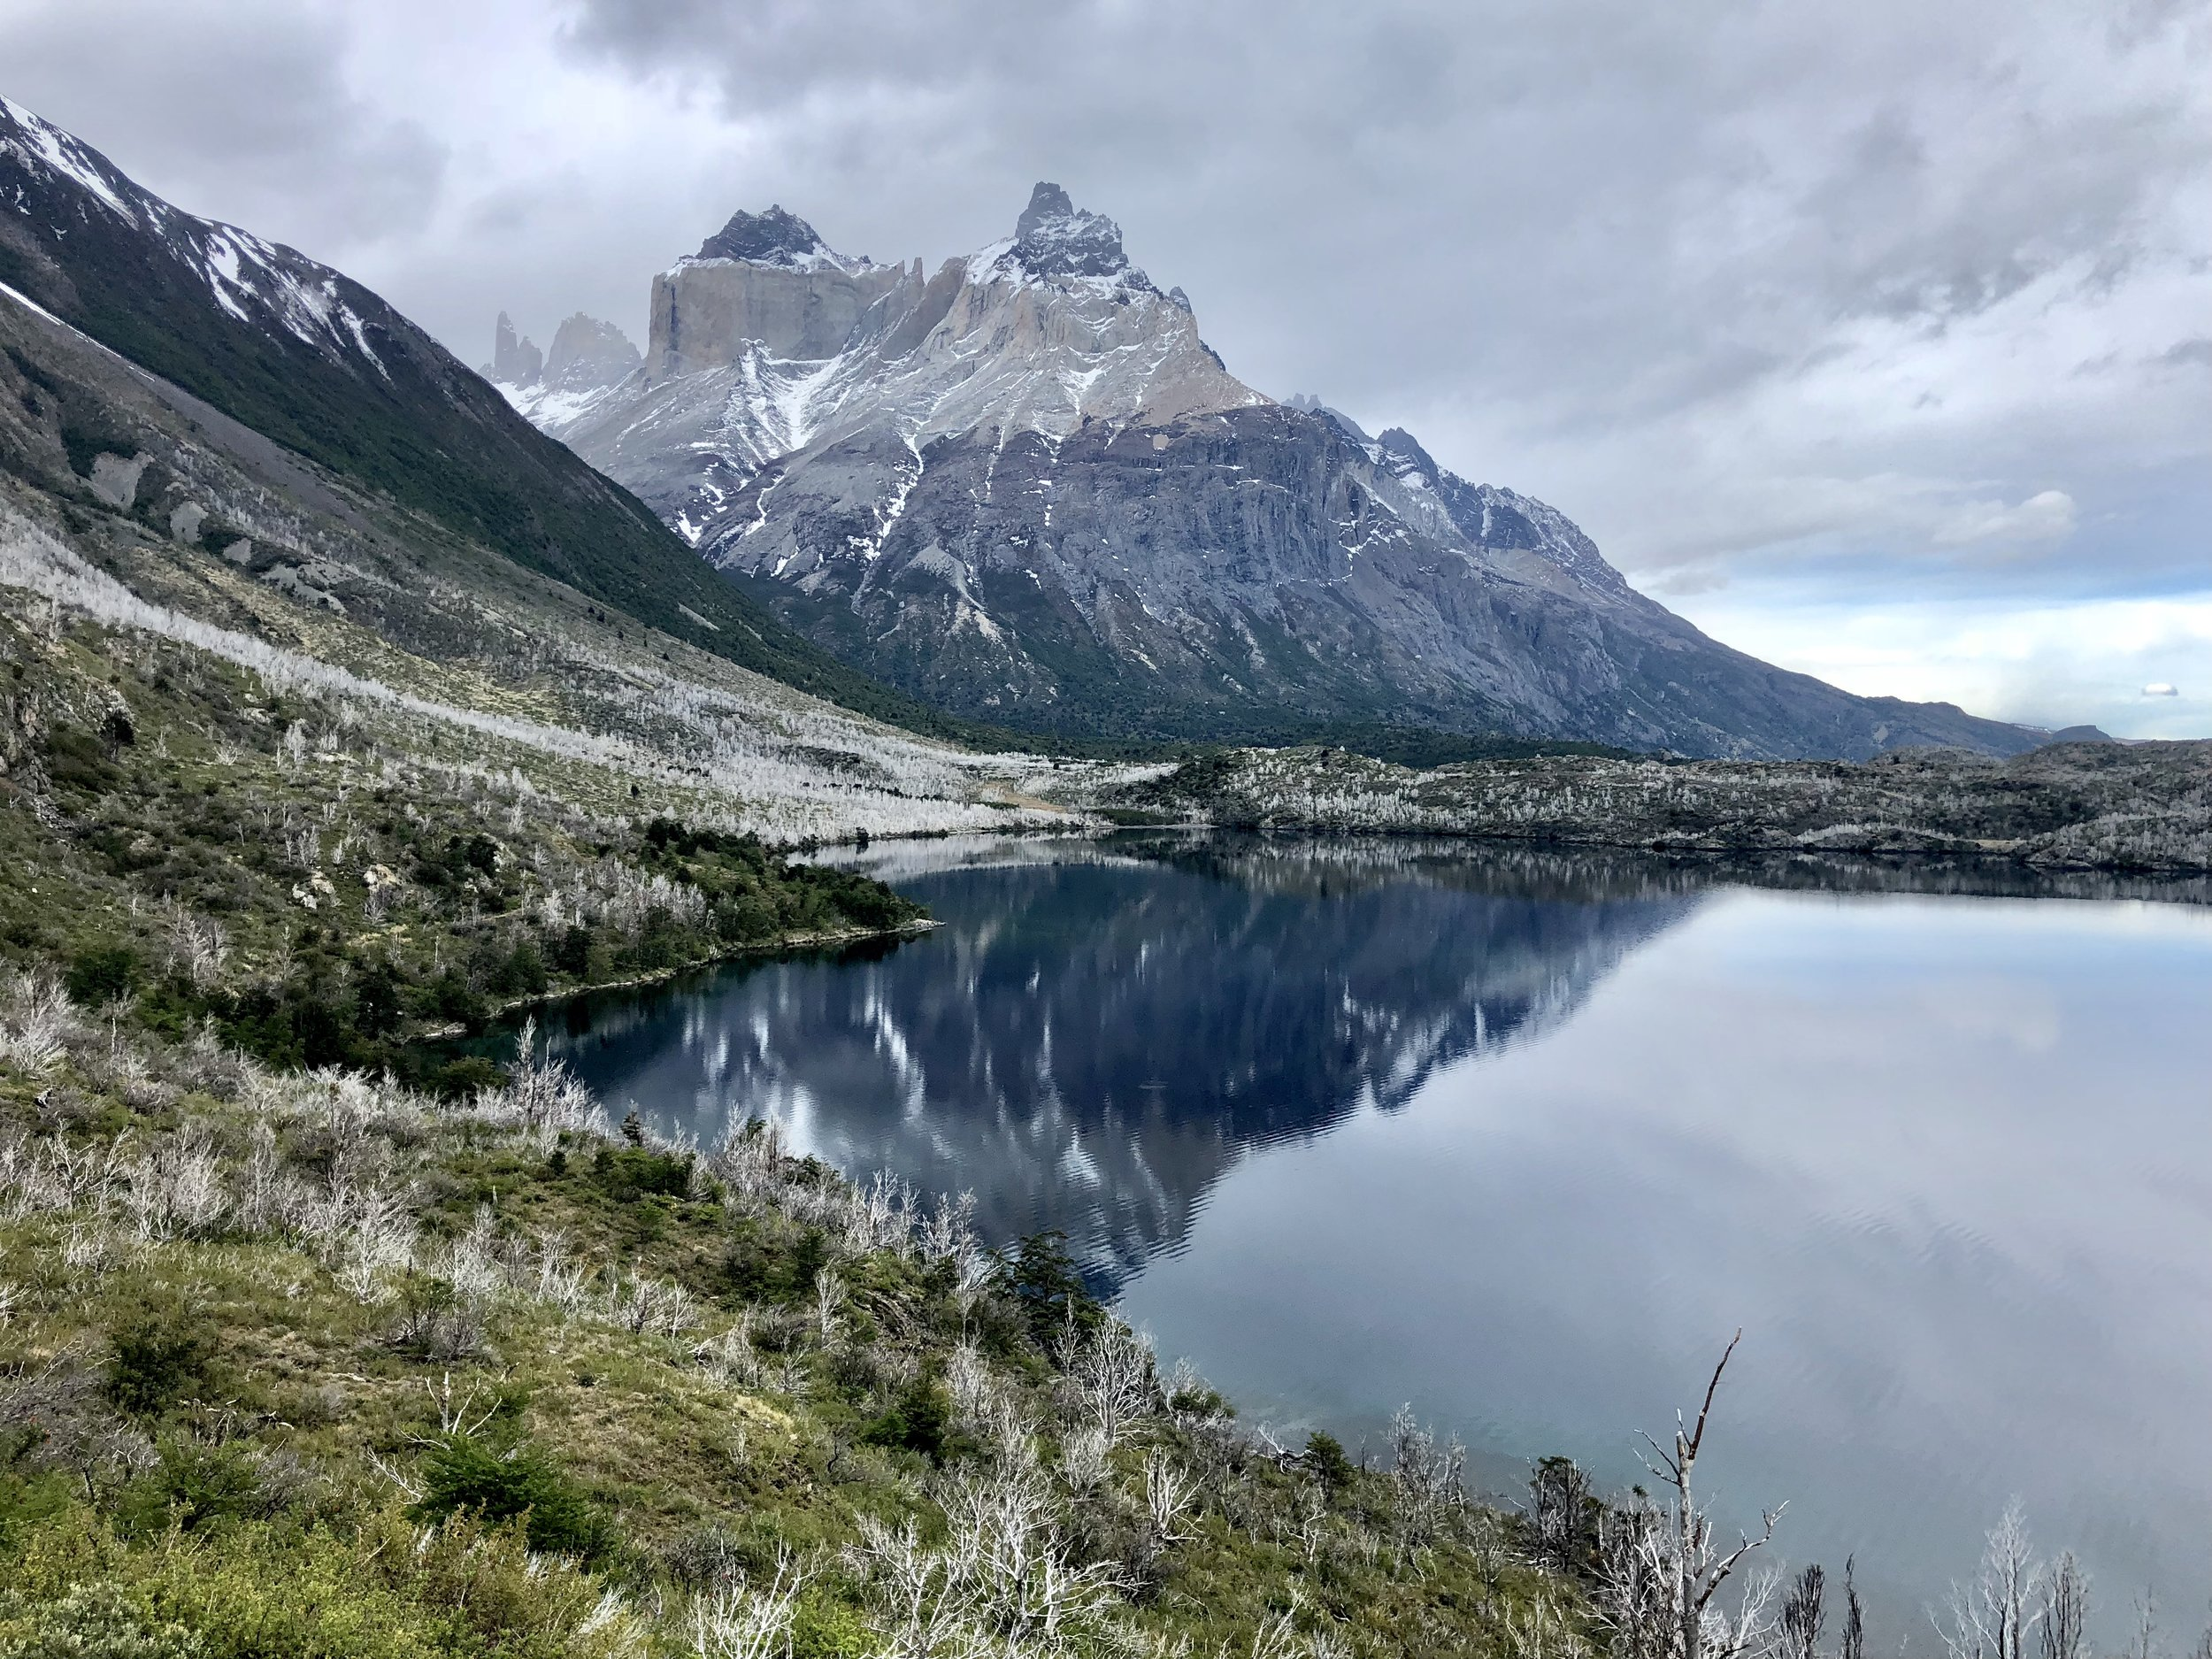 Lake reflection in Patagonia